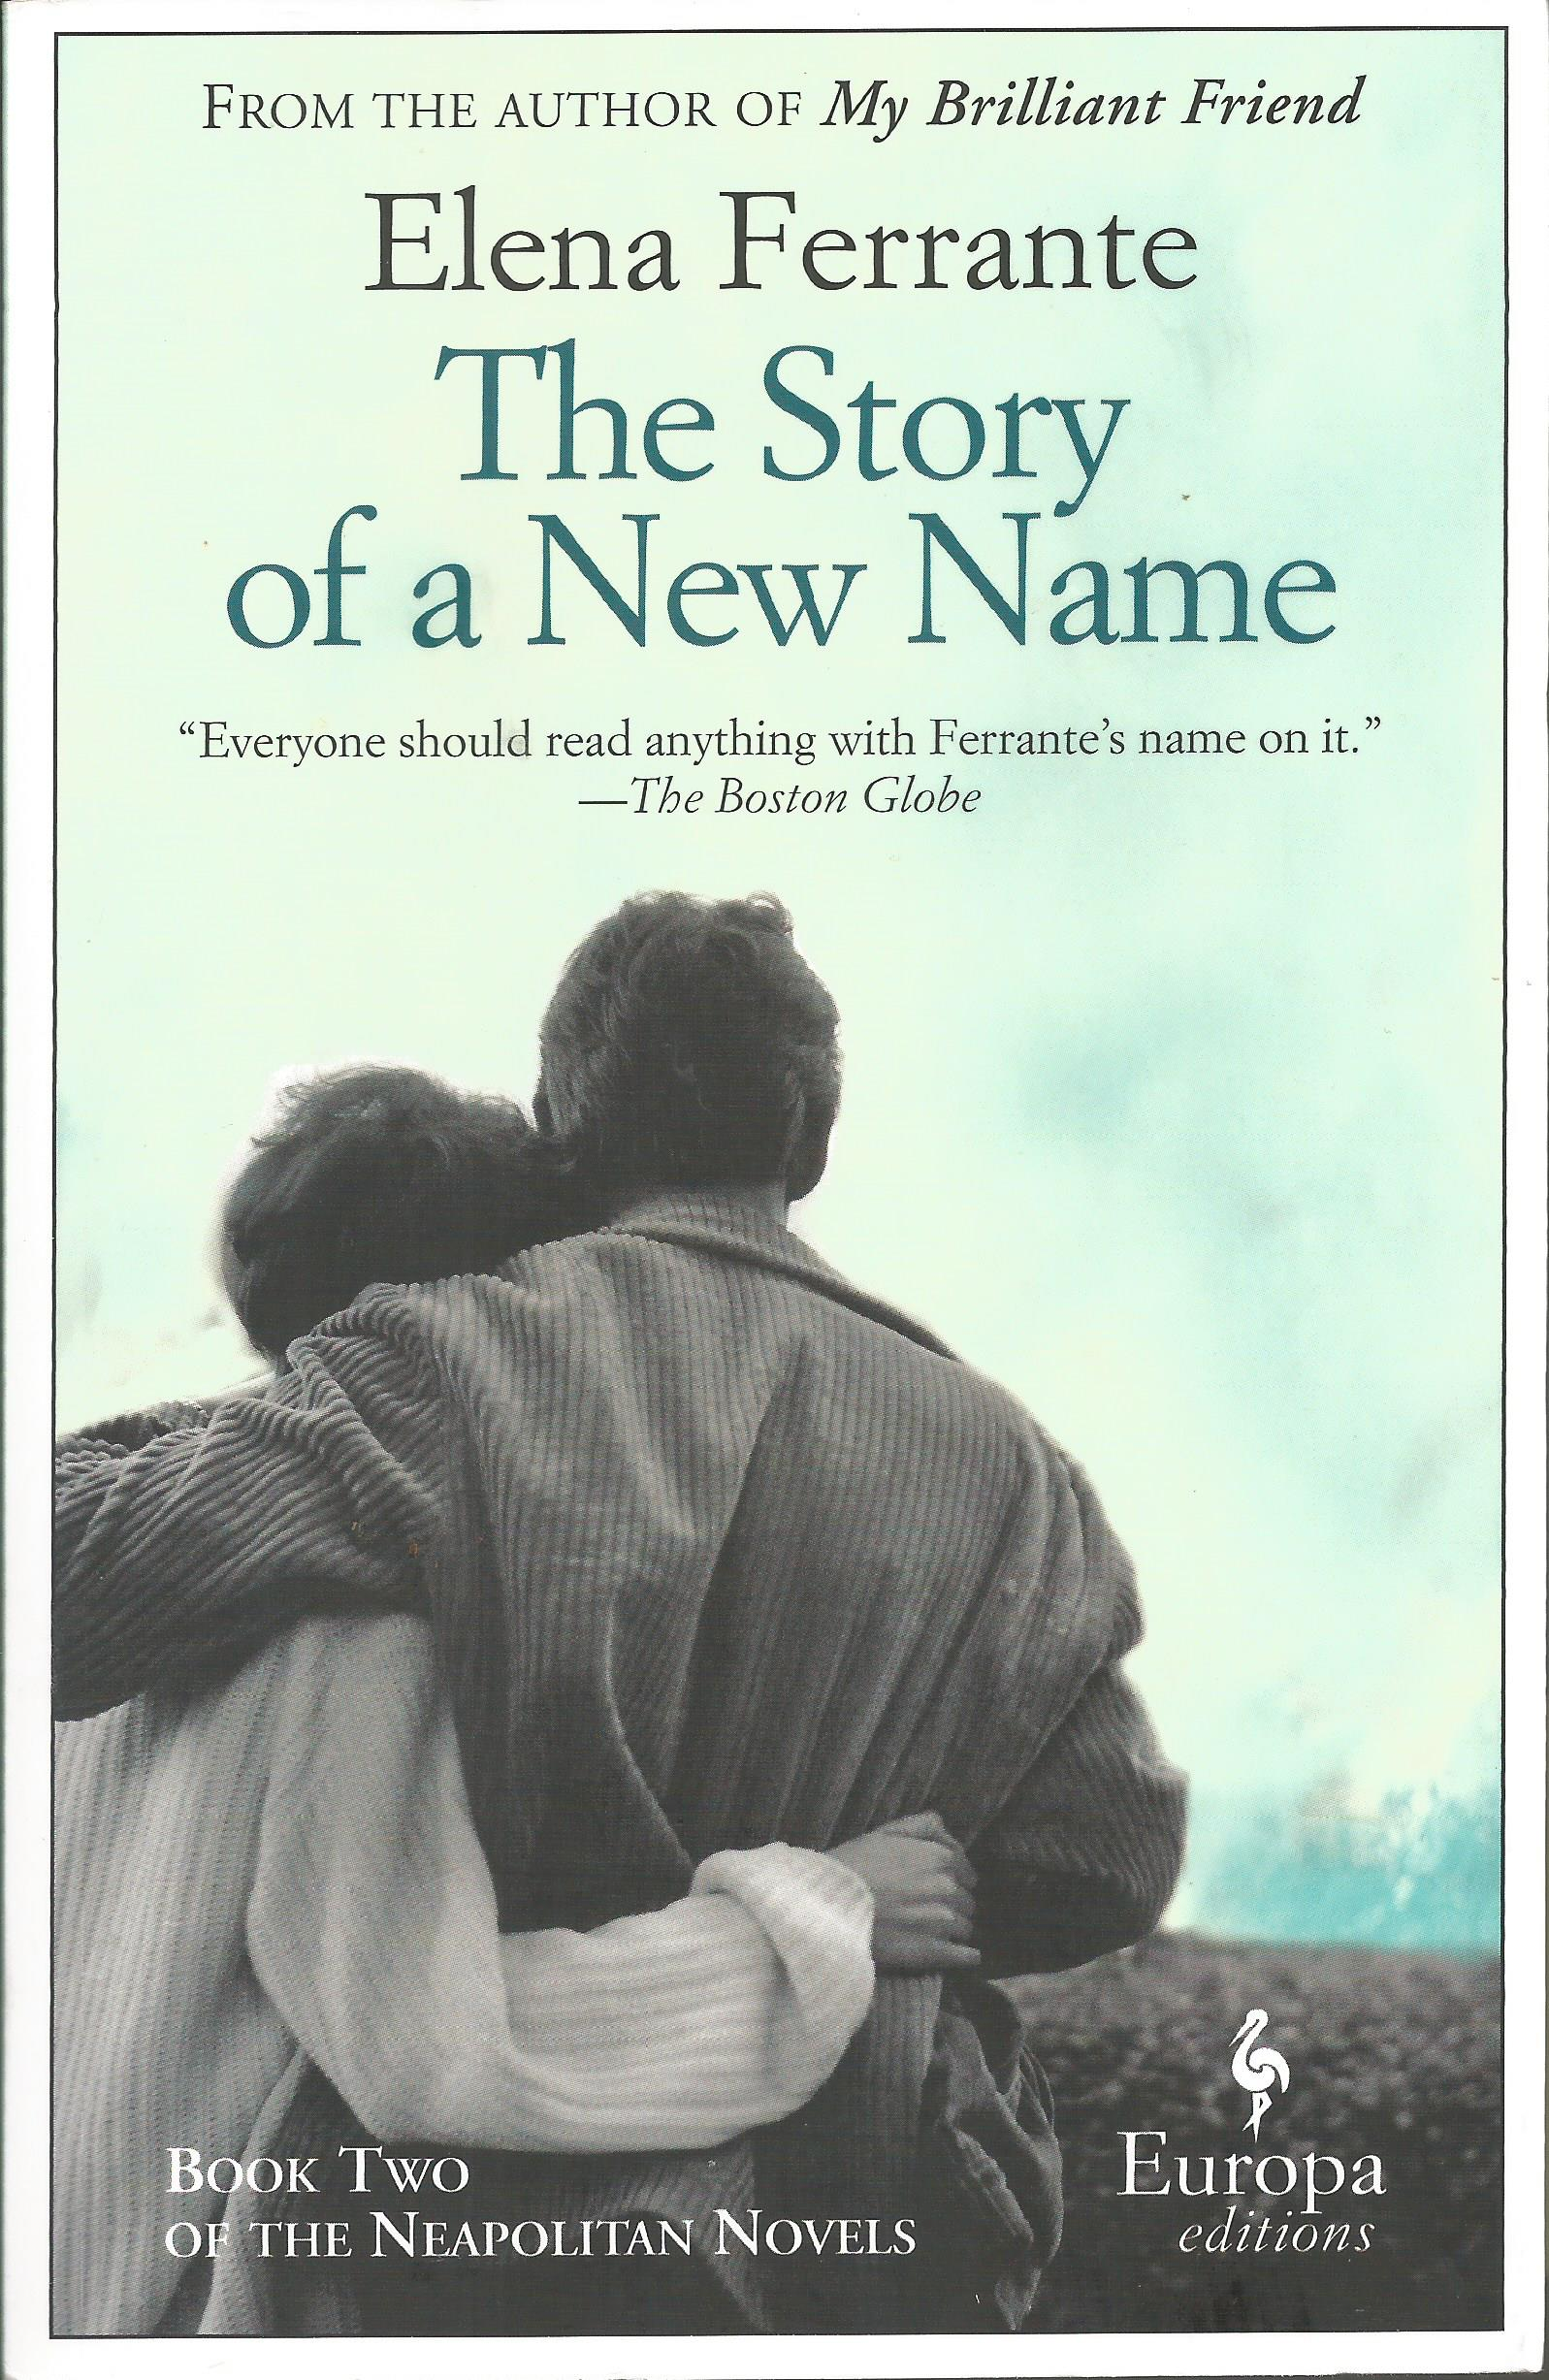 Fifty Books Project 2018: The Story of a New Name by Elena